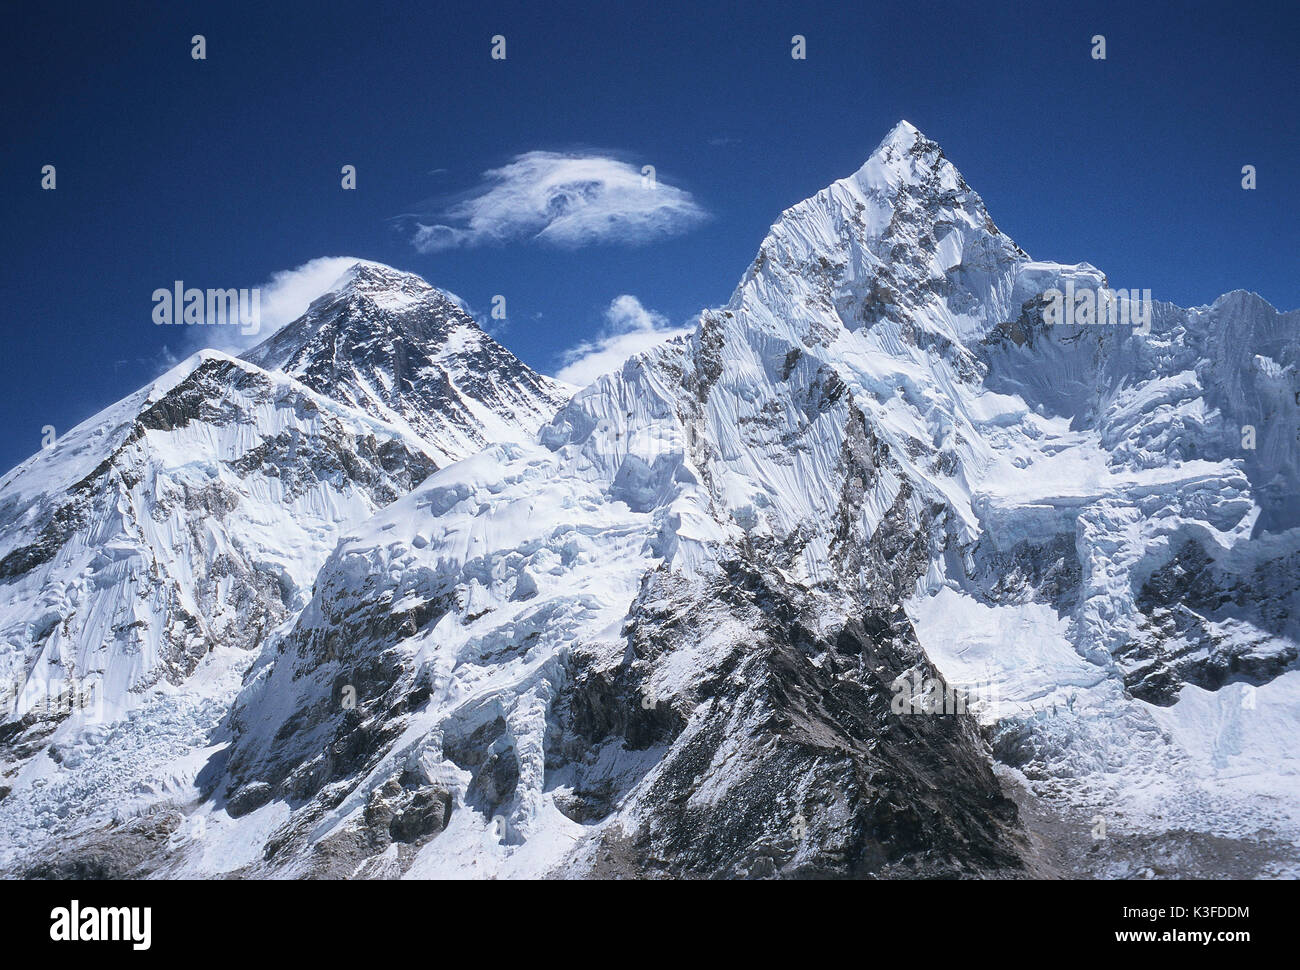 Mount Everest (on the left) and Nupse (on the right) from Kala Patar seen - Stock Image